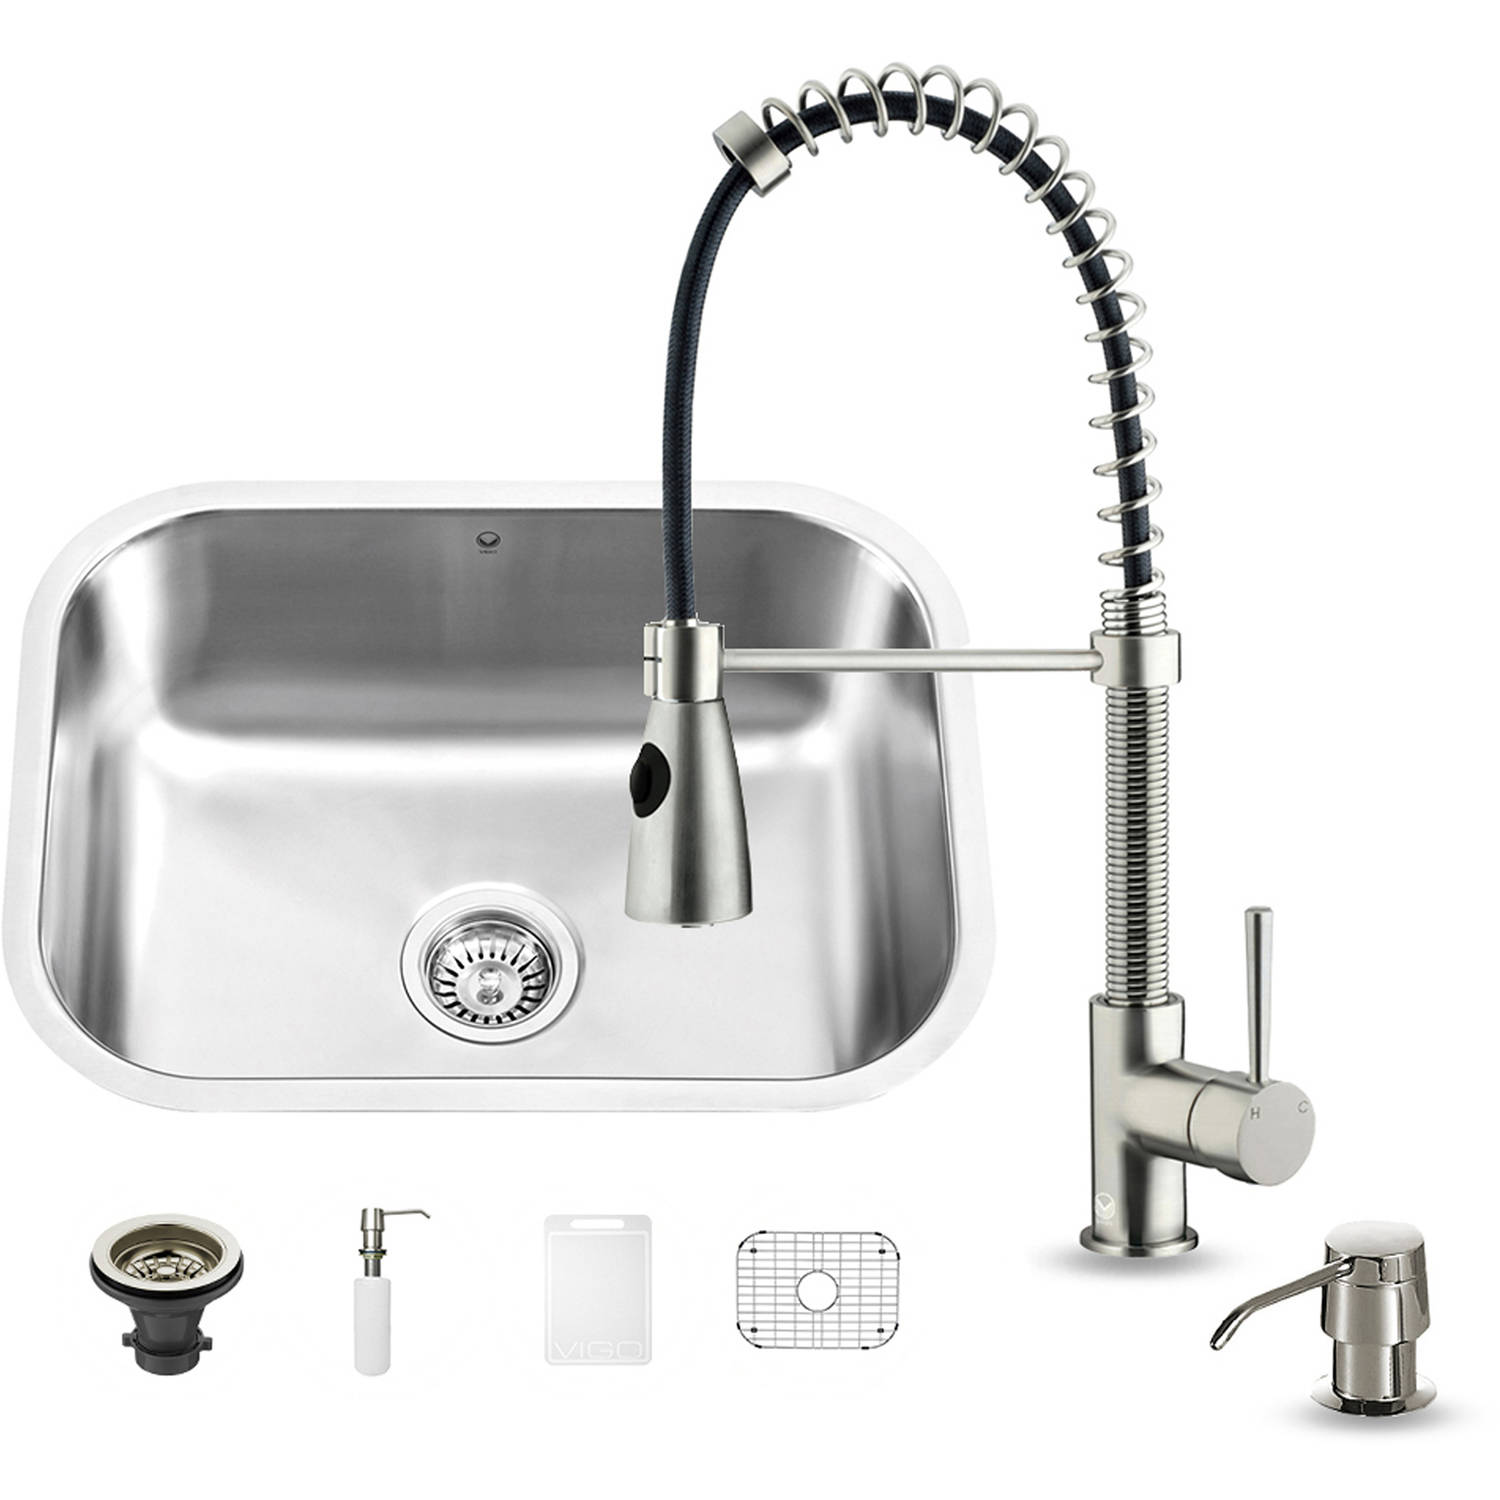 "Vigo All-in-One 23"" Undermount Stainless Steel Kitchen Sink and Faucet Set by Generic"